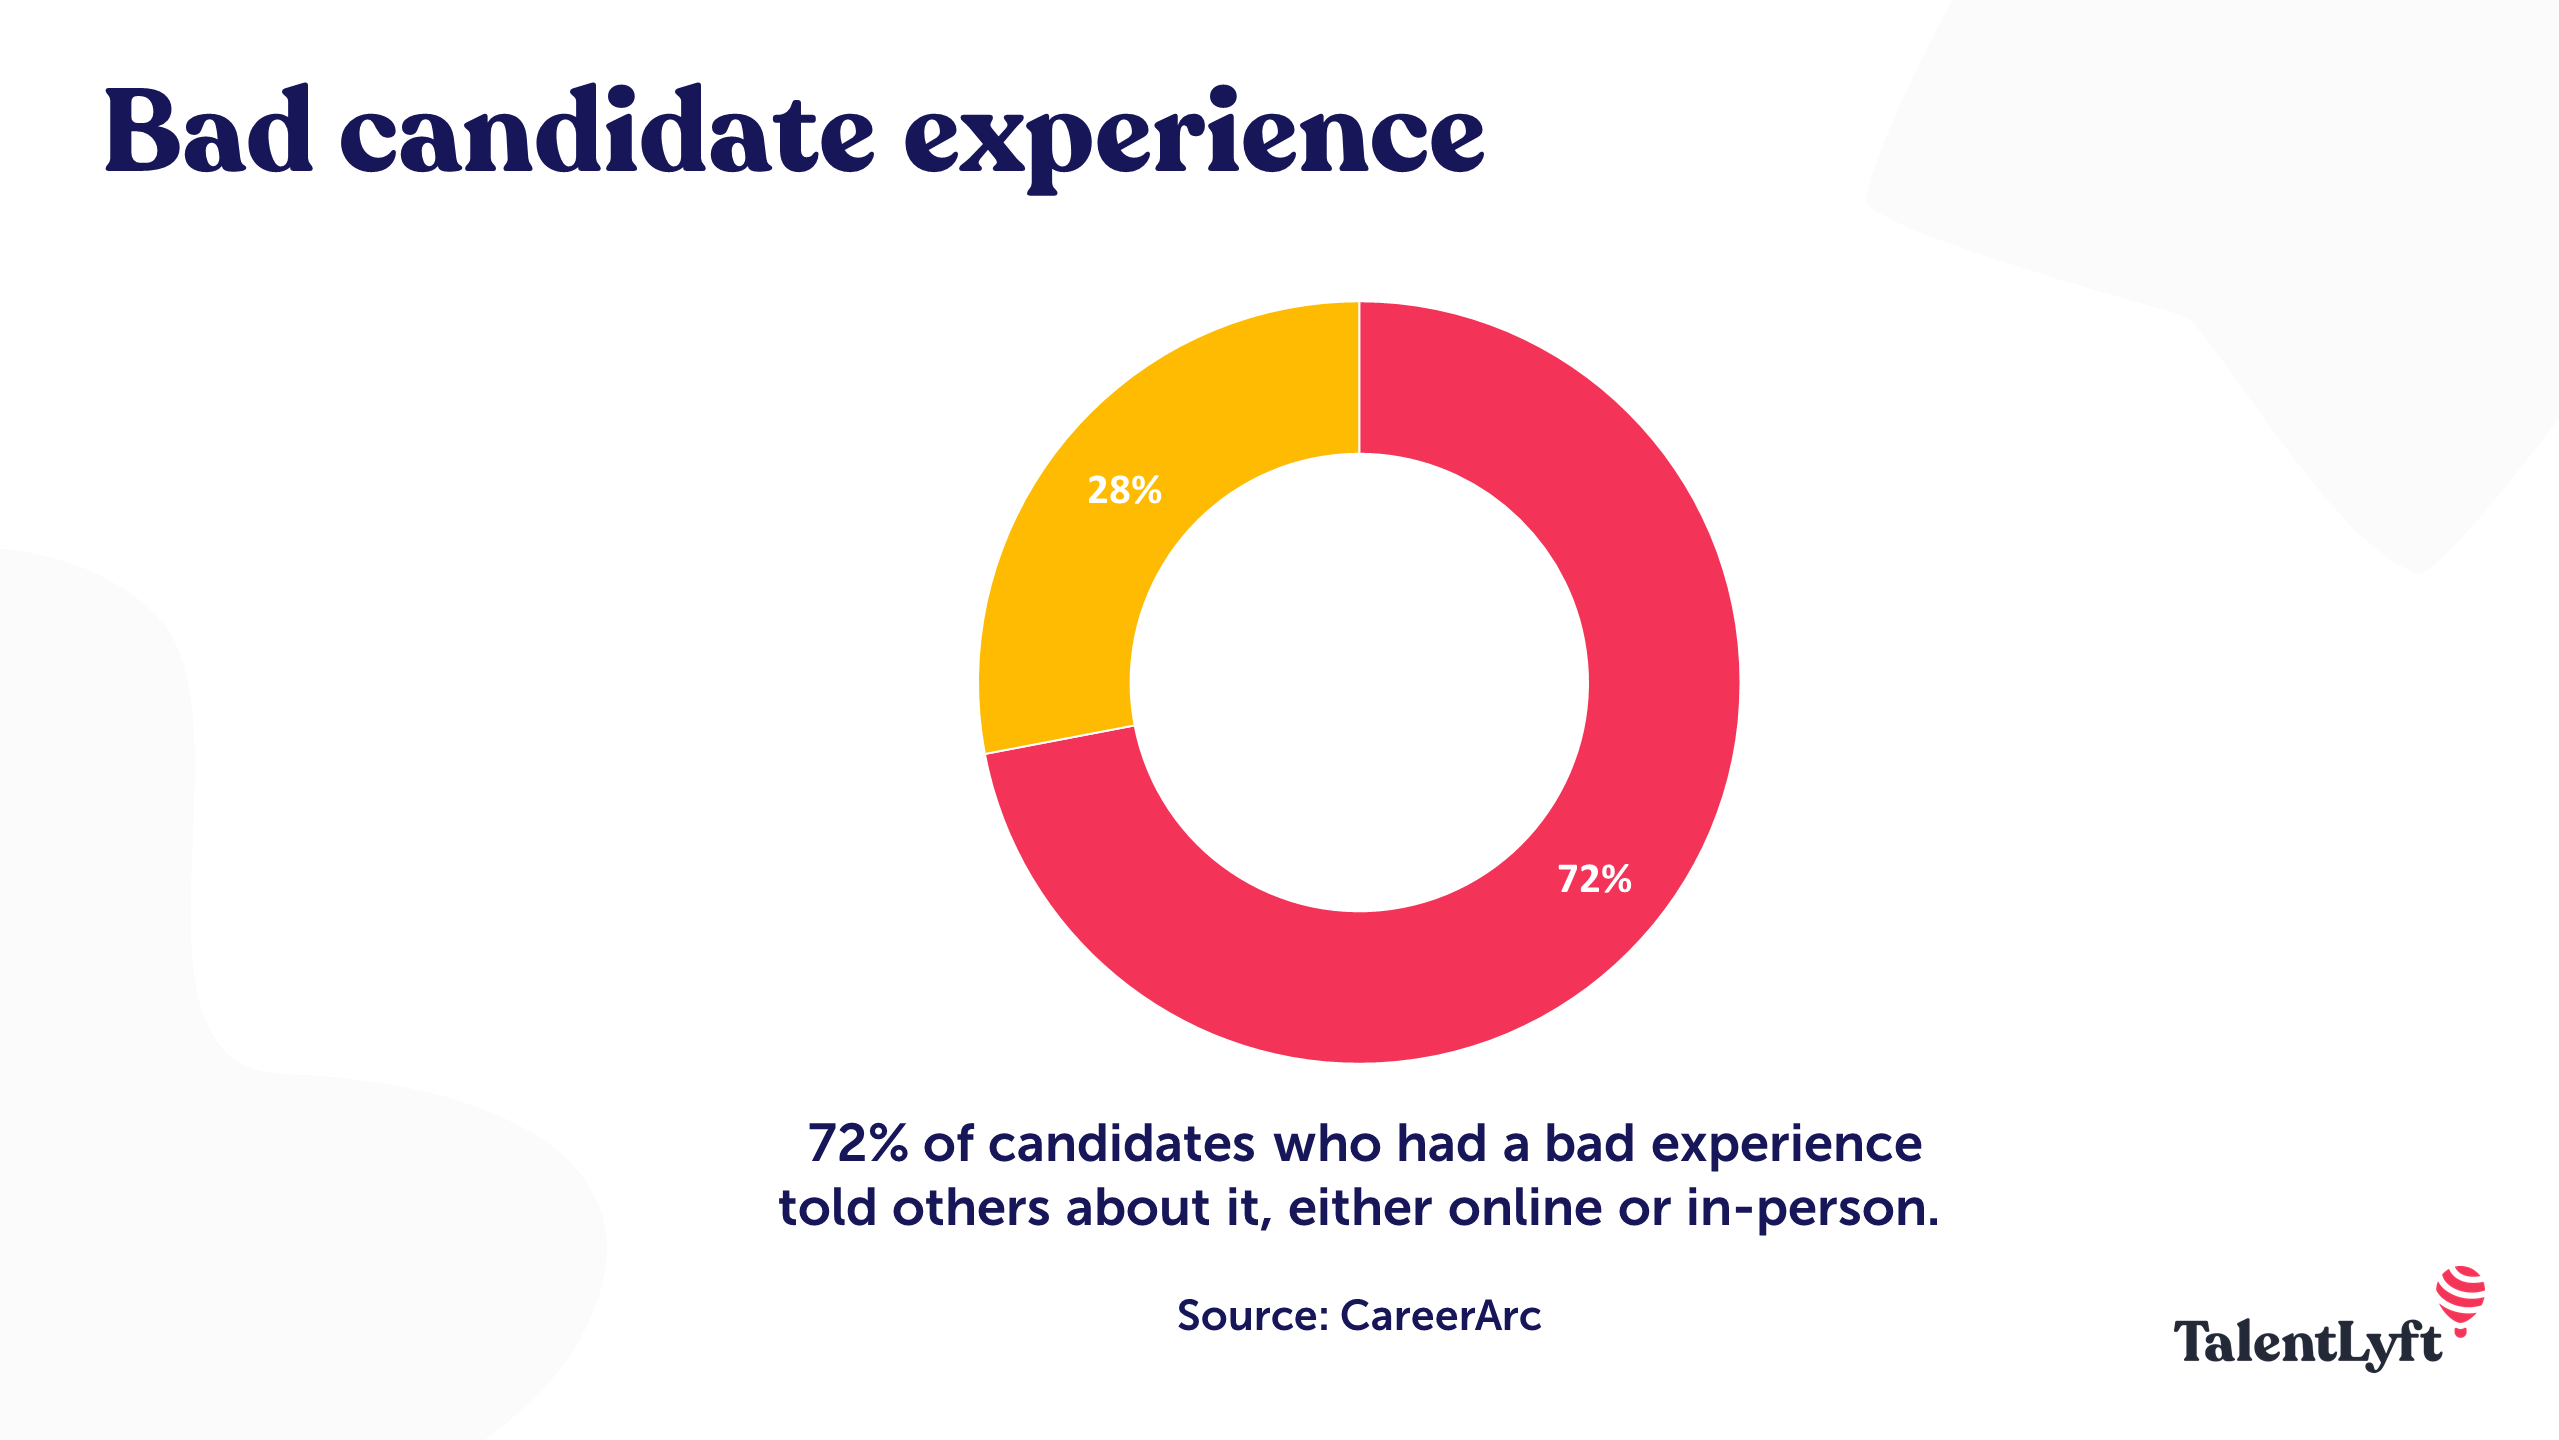 Negative candidate experience statistic